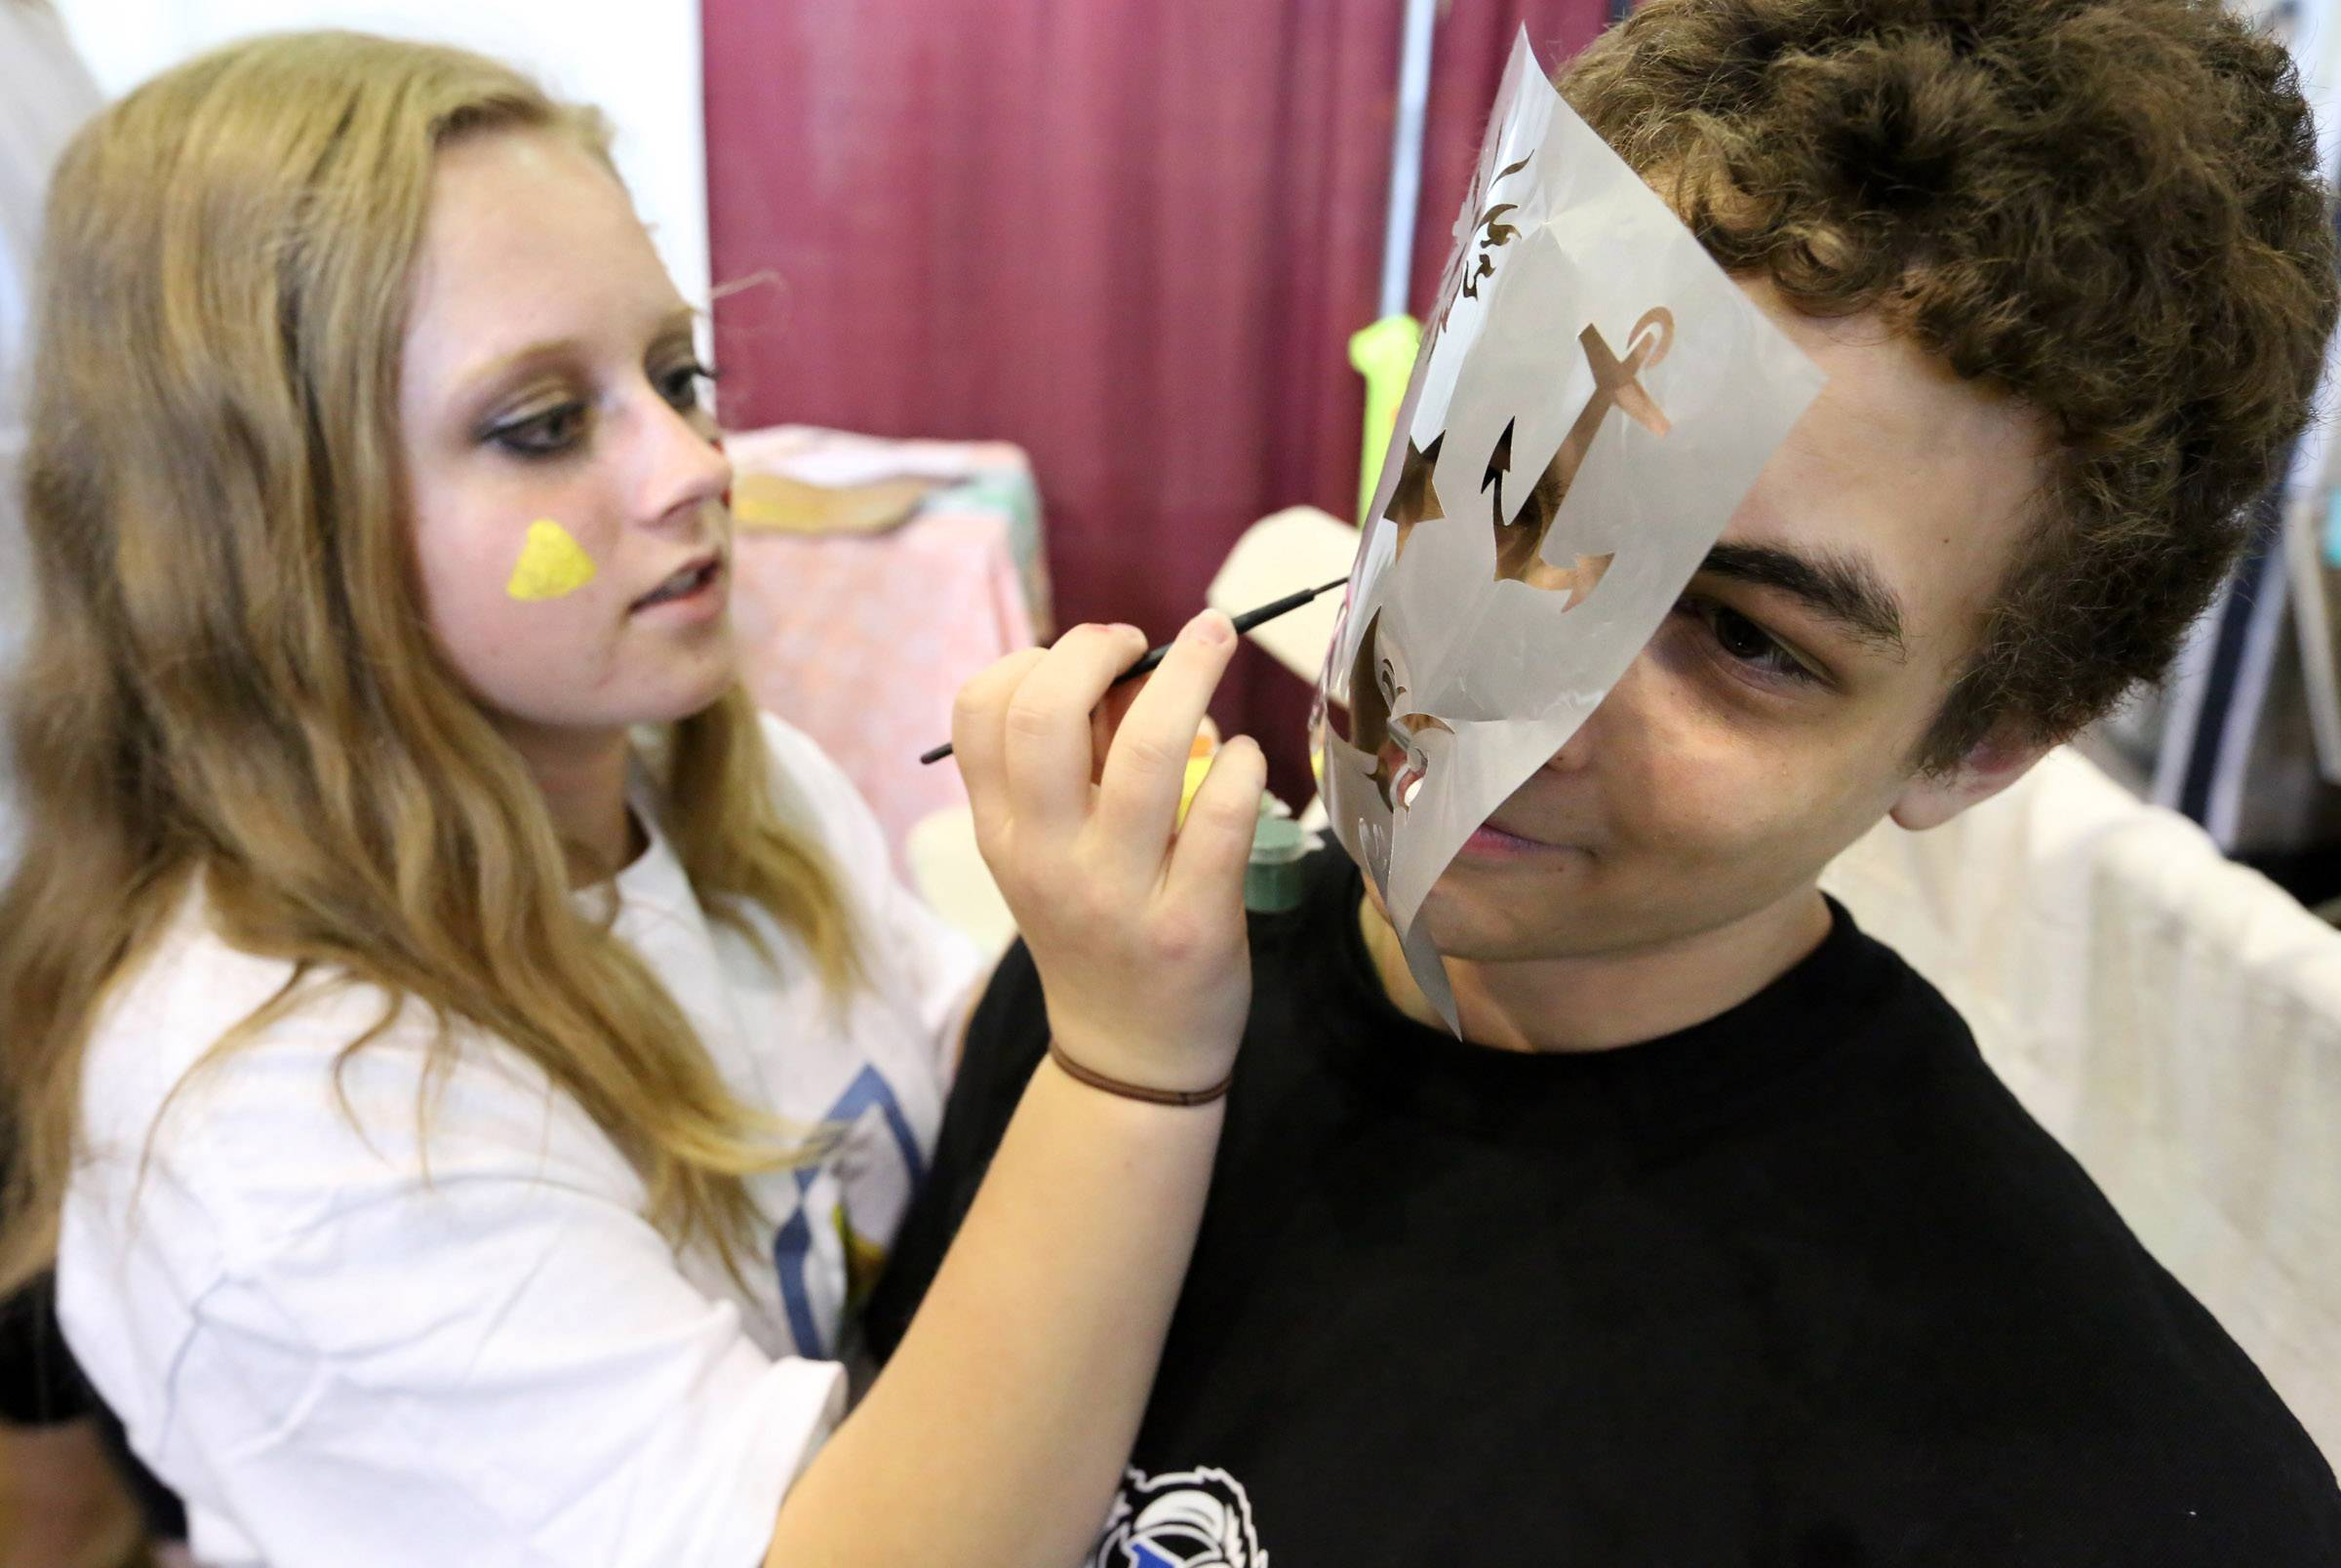 Brian Borcean, 16, has his face painted by Suzanne Zborowski, also 16, both of Lake Zurich, using a stencil at Be Safe Driving School's booth at Lake Zurich's annual Business and Community Showcase on Saturday at Lake Zurich High School. Zborowski is a graduate of the driving school.